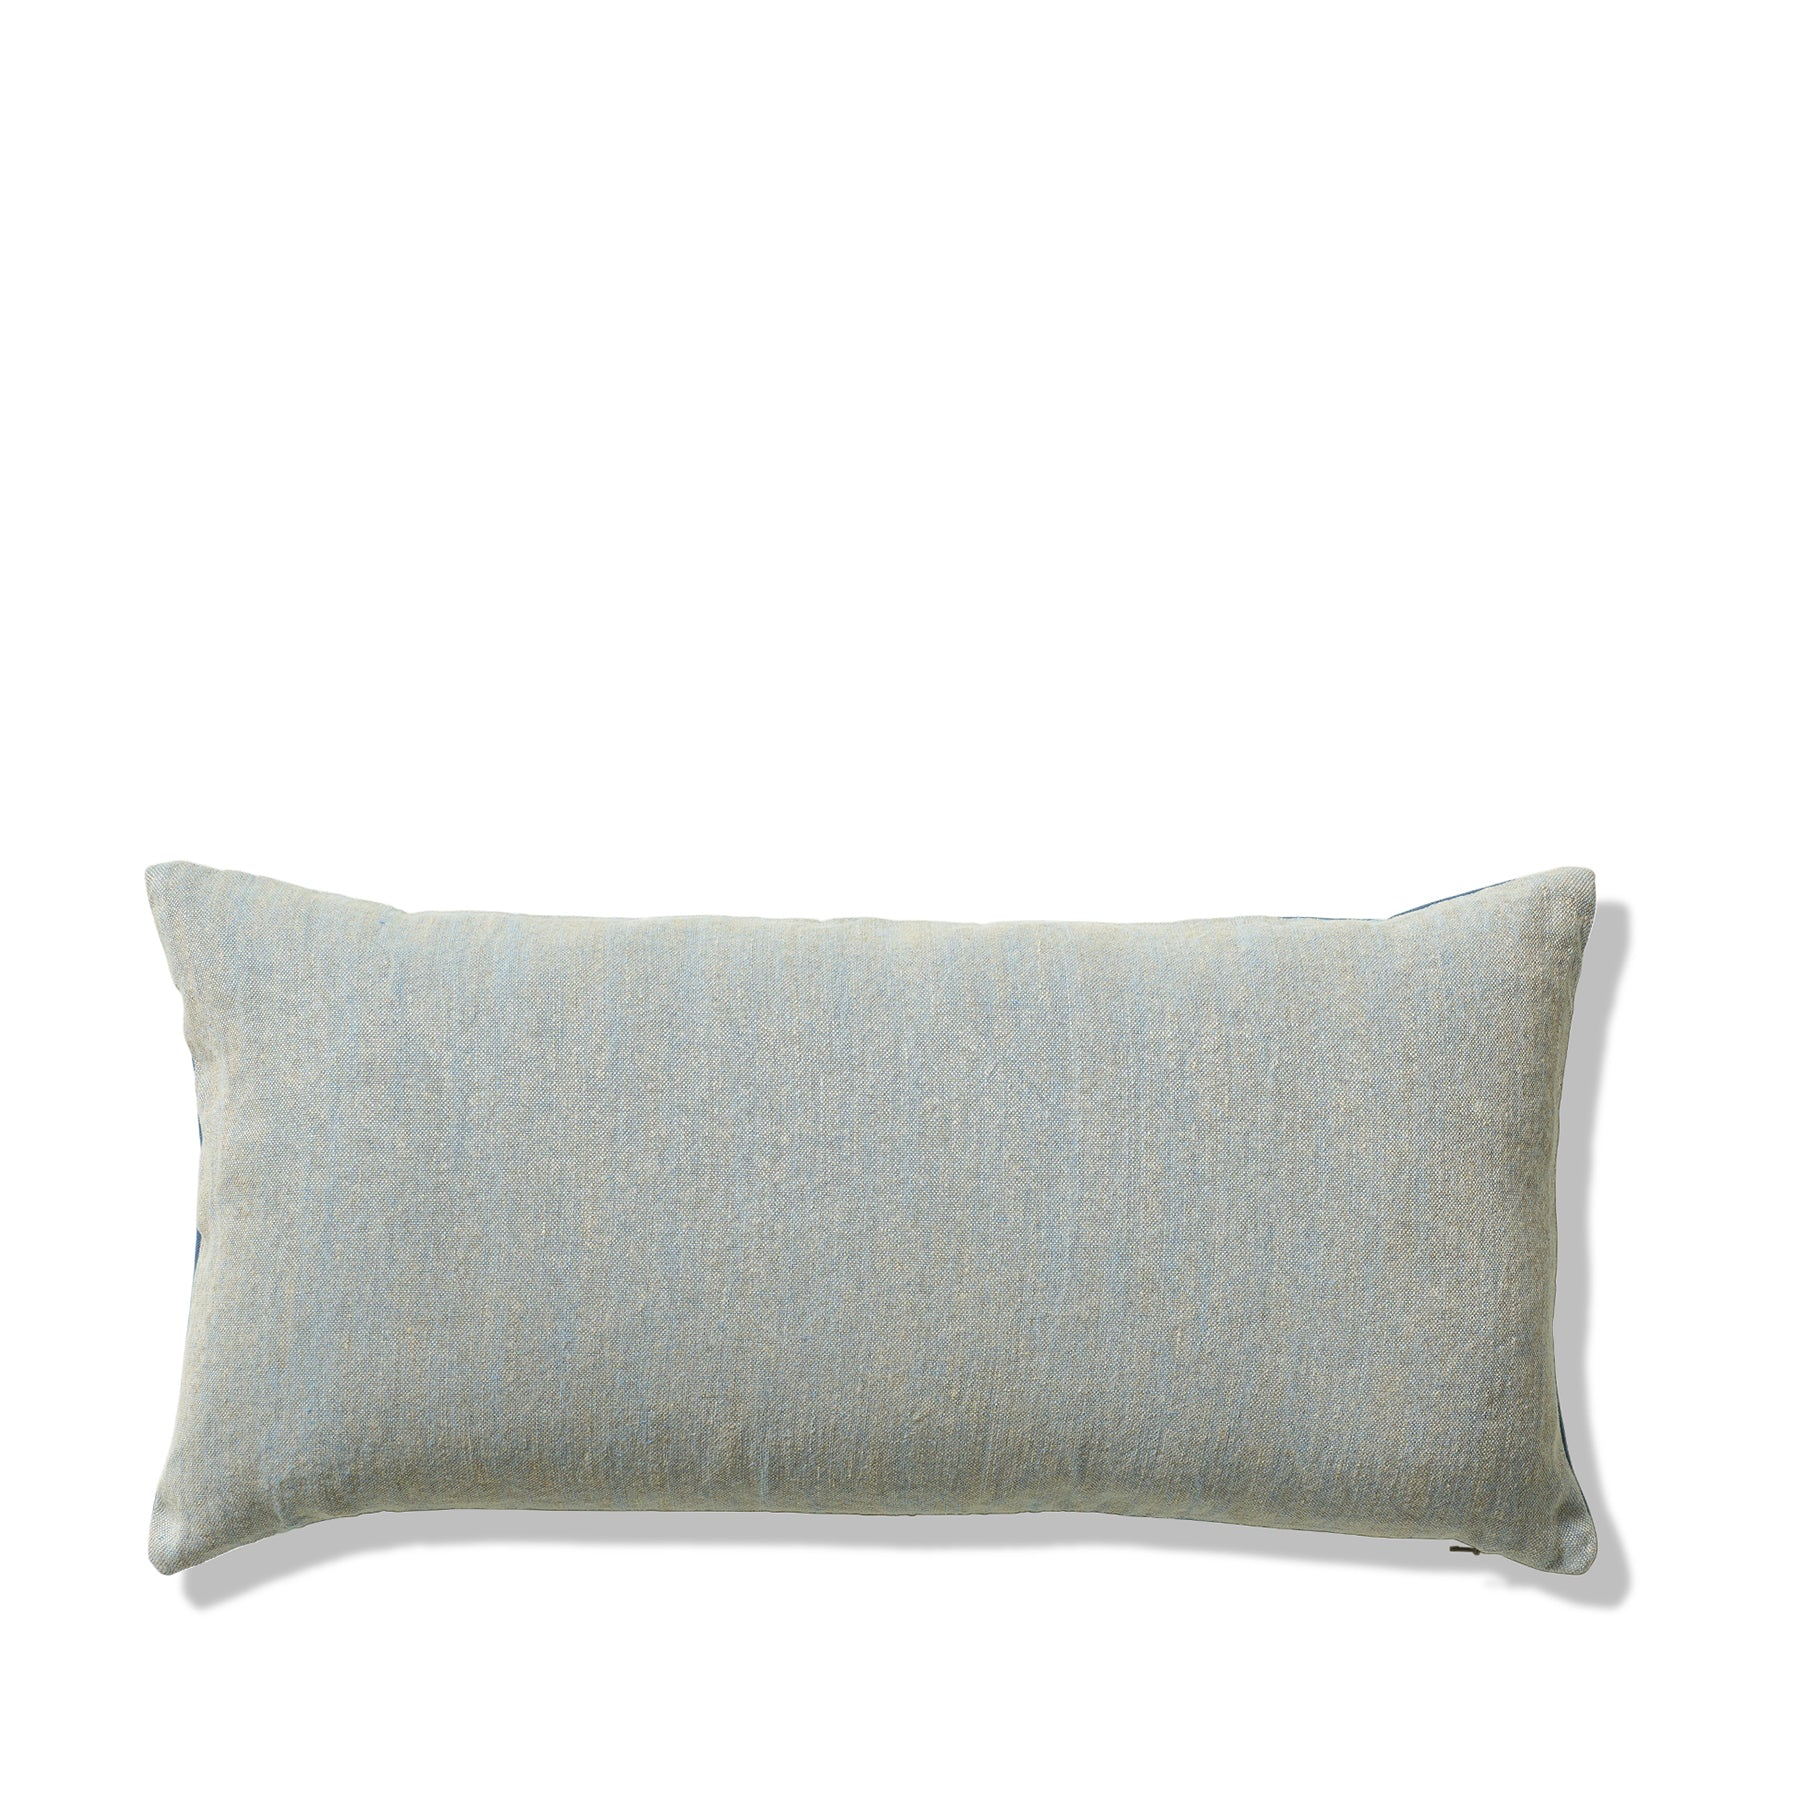 Chalk and Sturdy Girl Pillow in Brooke and Blue Hen Zoom Image 1